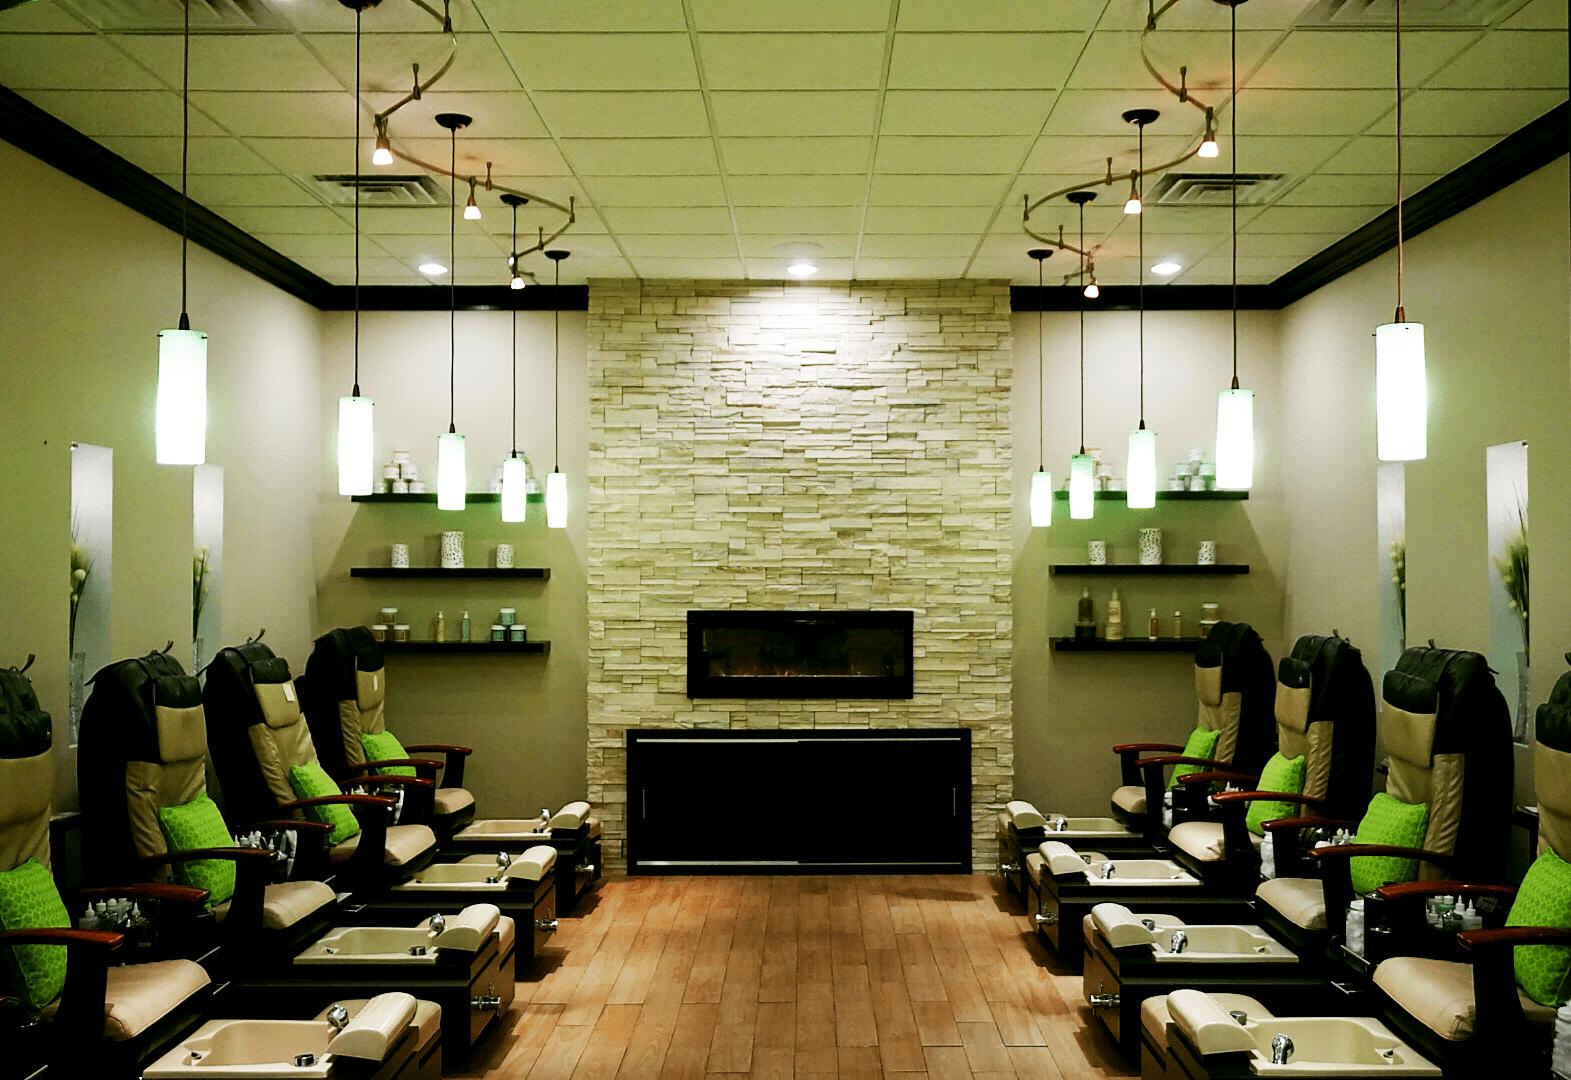 Envy nail spa best nail salon near atlantic city - Nail salons close by ...